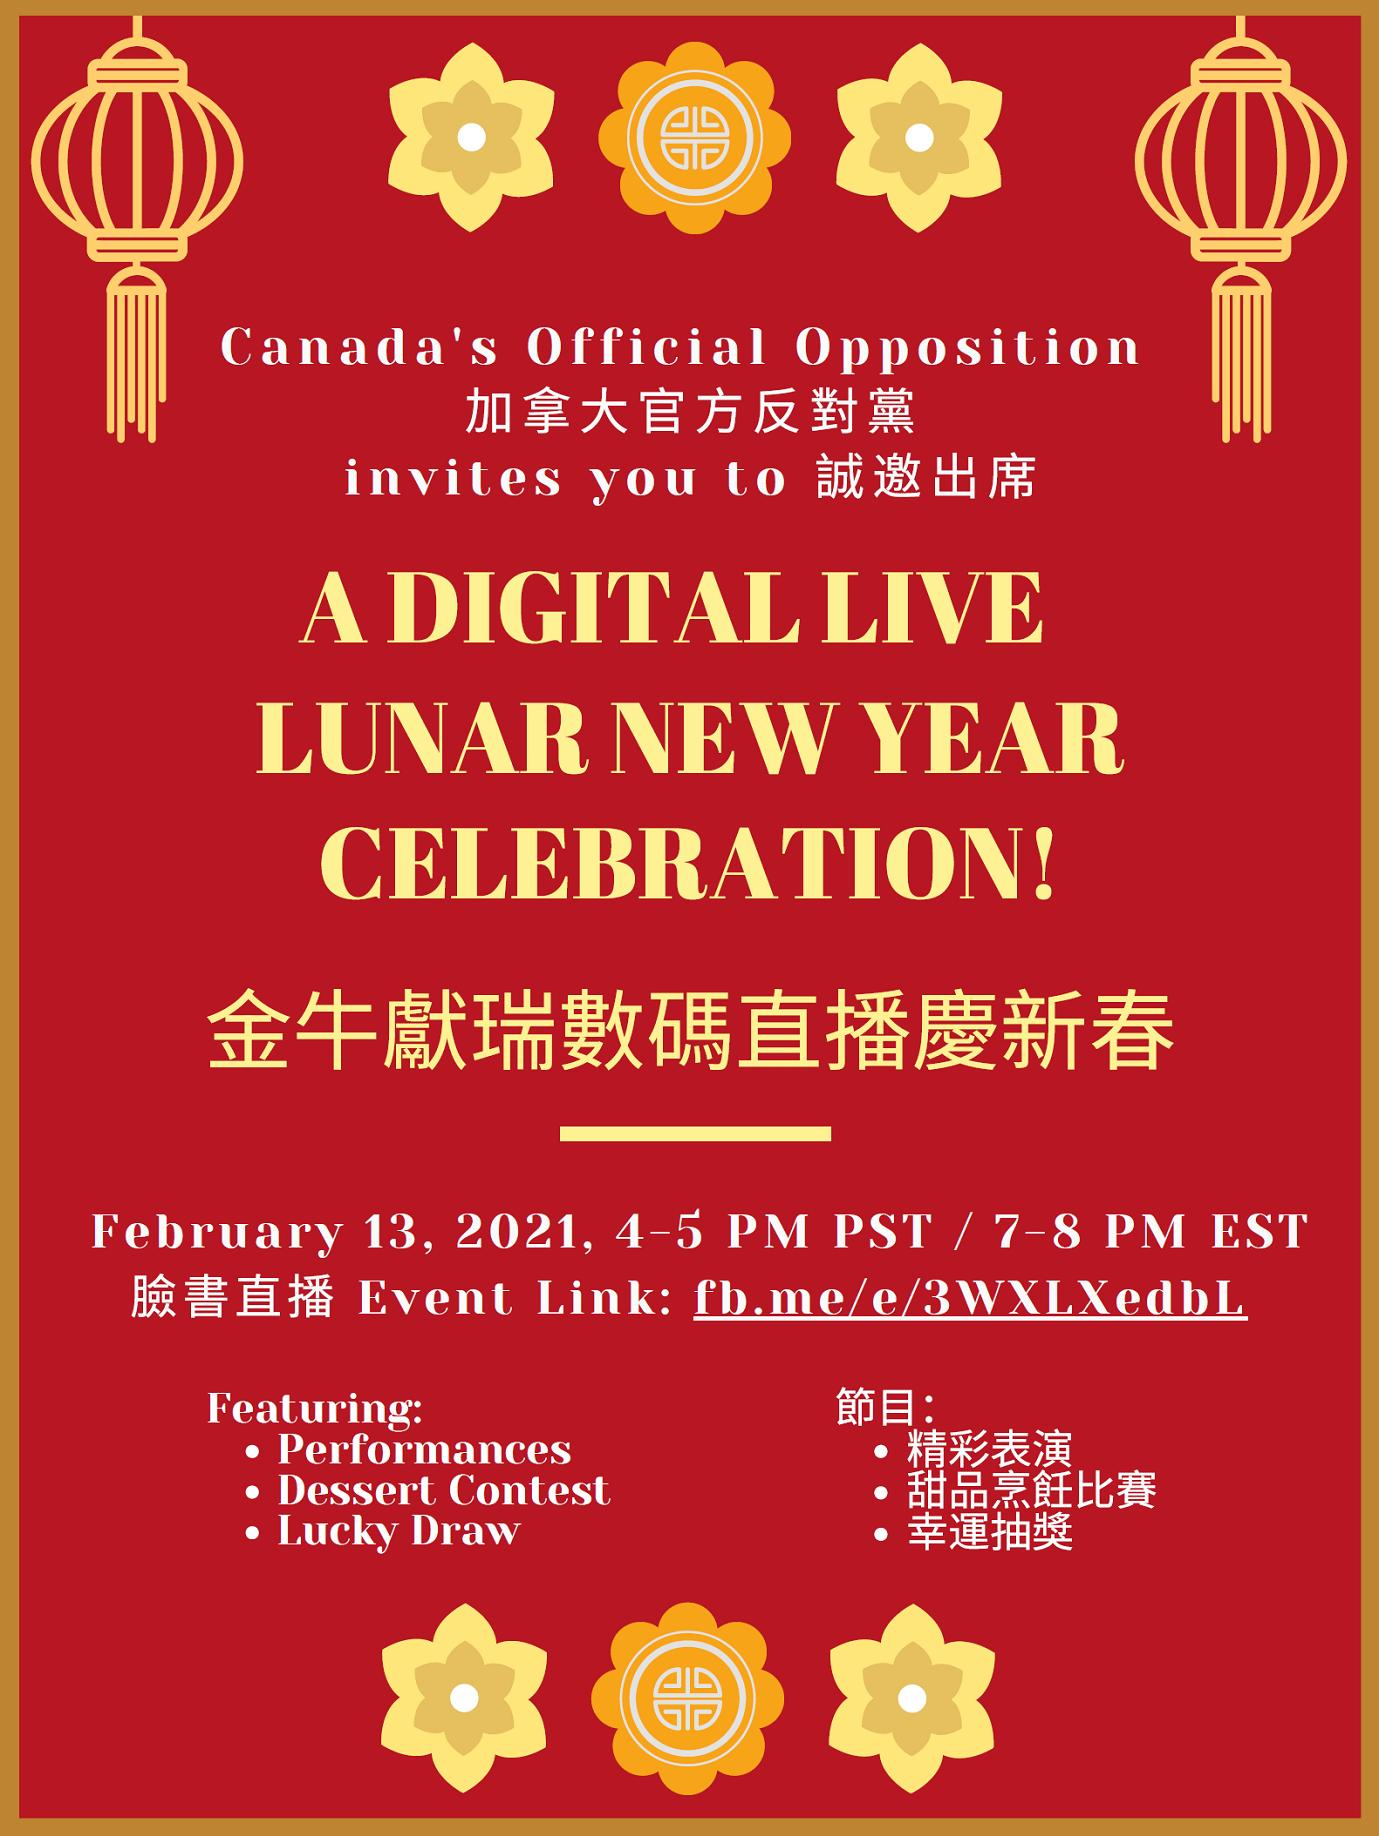 https://d3n8a8pro7vhmx.cloudfront.net/sswrconservative/pages/1227/attachments/original/1612883638/Lunar_New_Year.jpg?1612883638